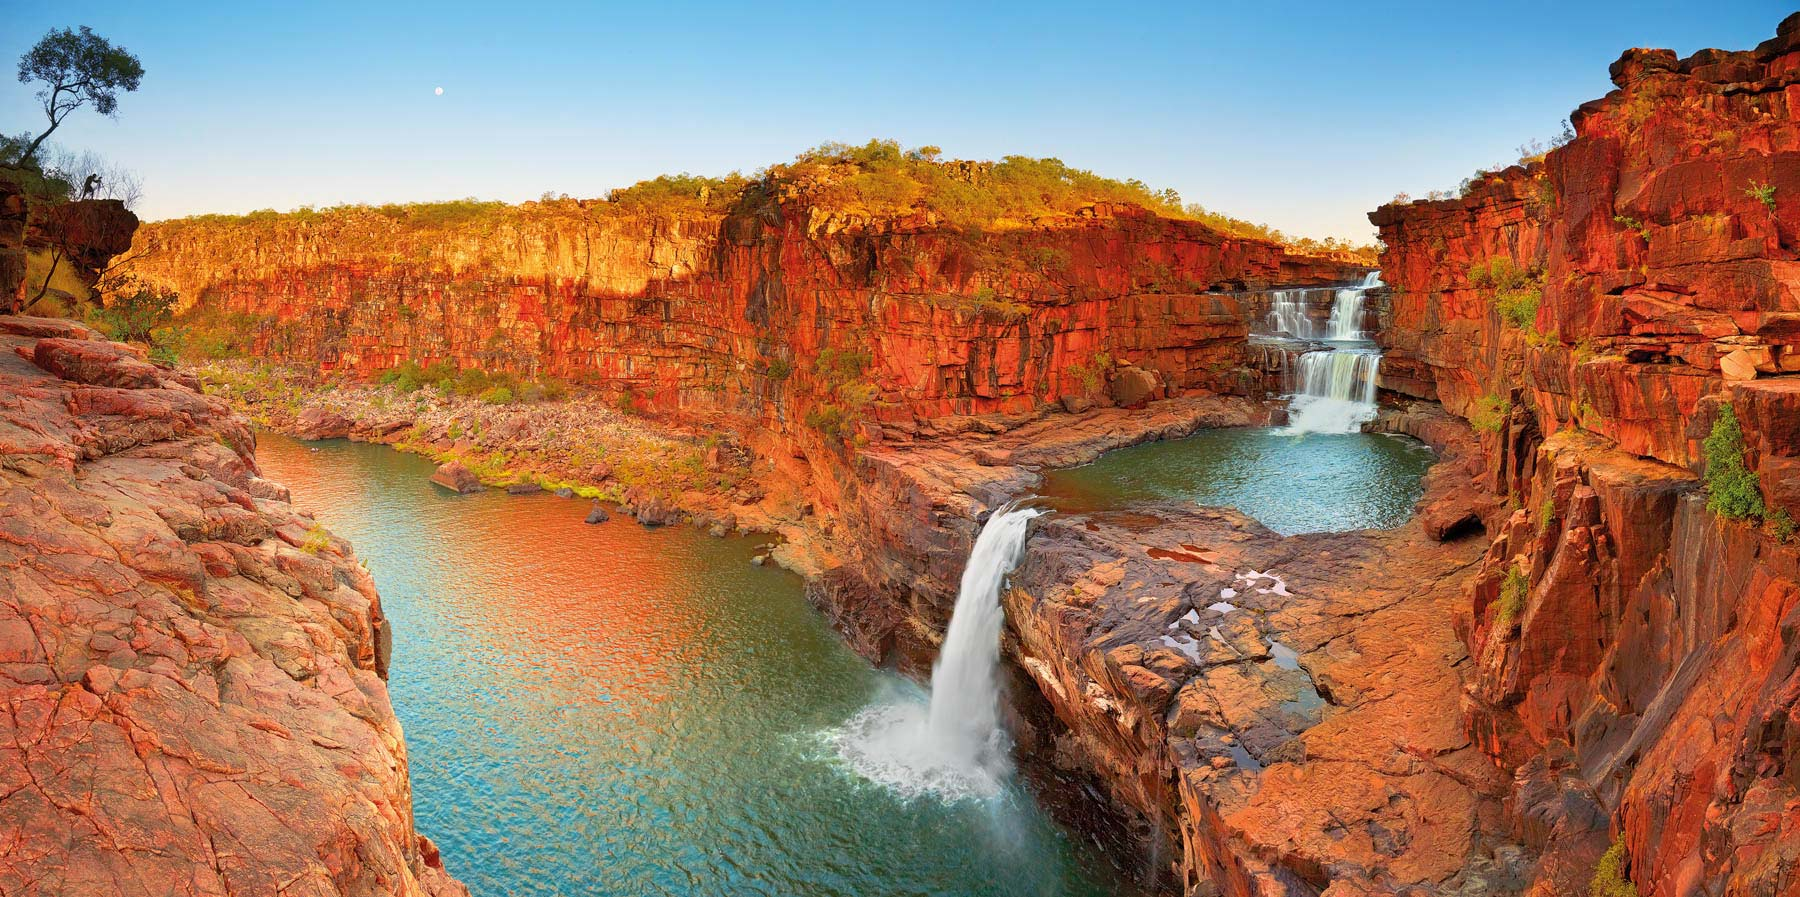 Golden light over Mitchell Falls, Kimberleys, WA, Australia.